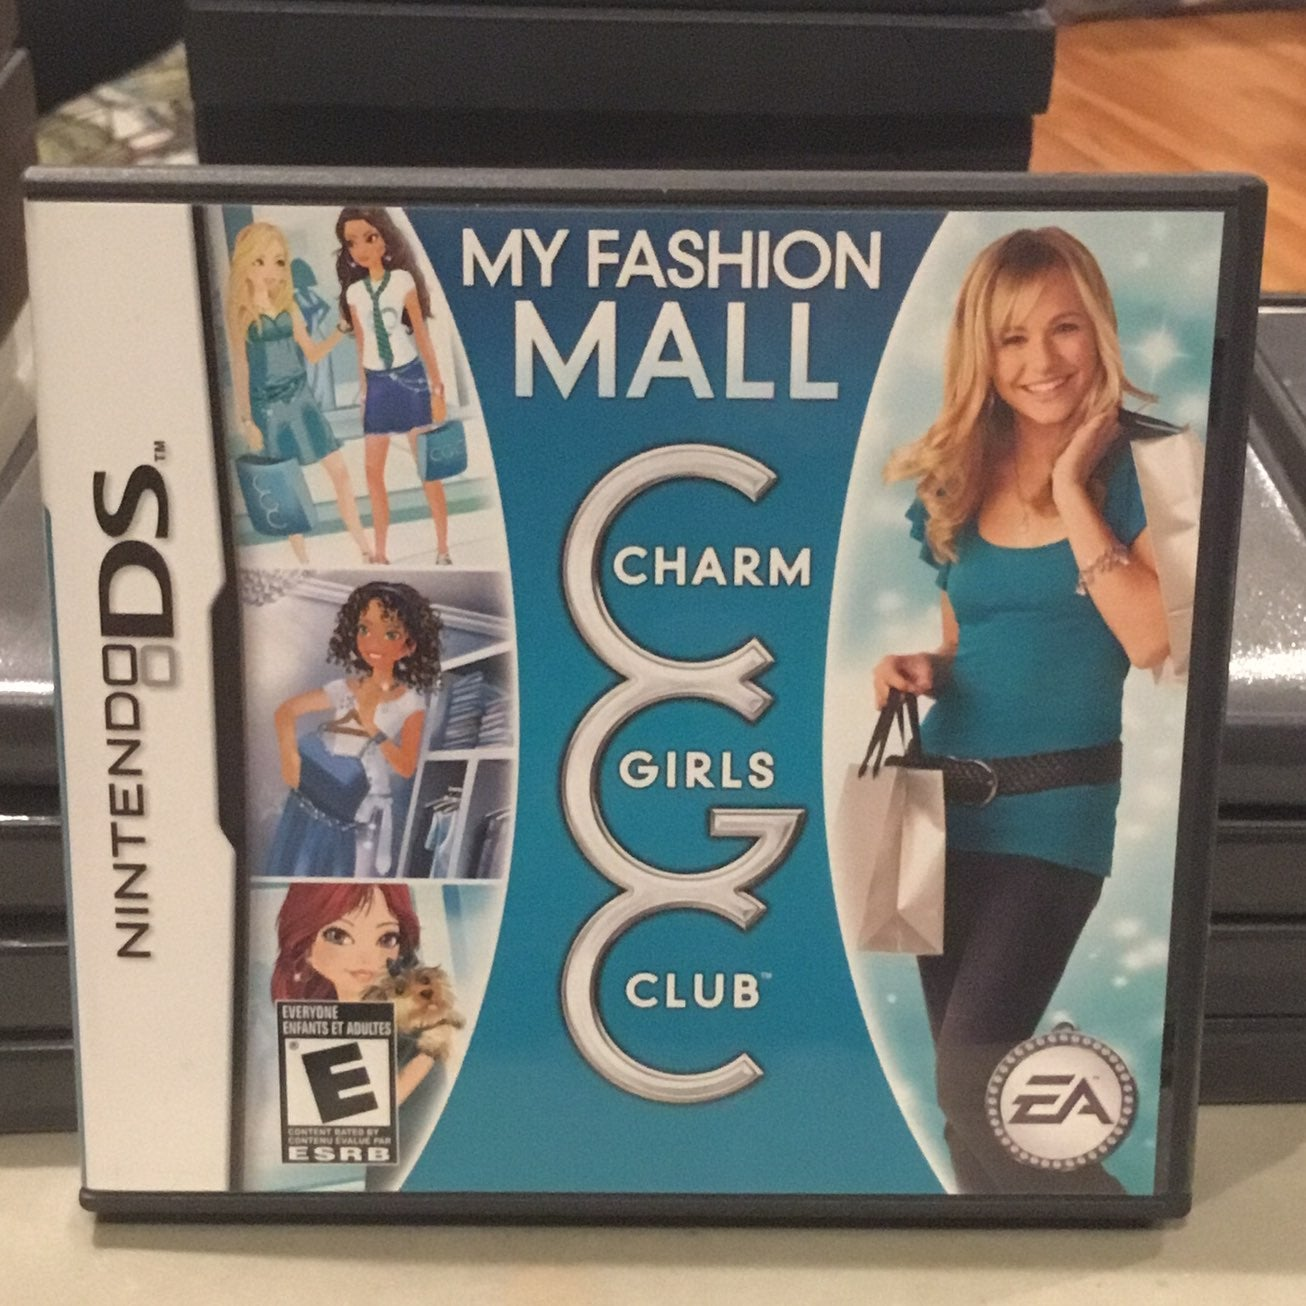 MY FASHION MALL CHARM GIRLS CLUB-DS GAME